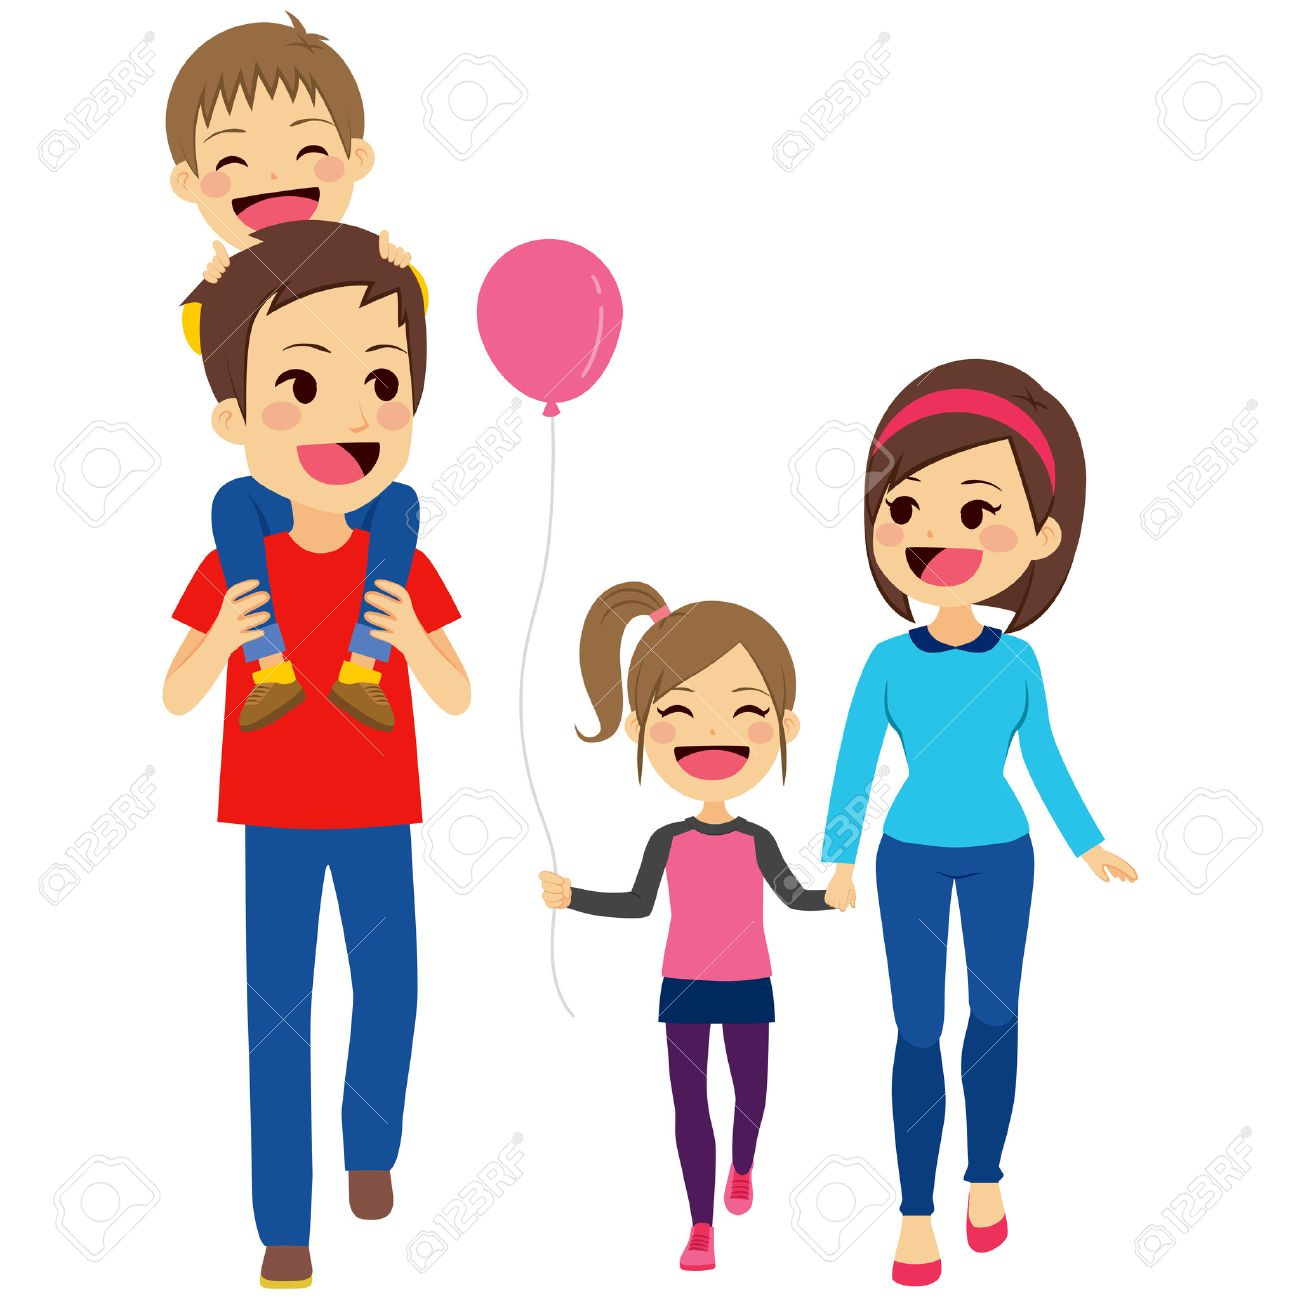 Walking Together Clipart.